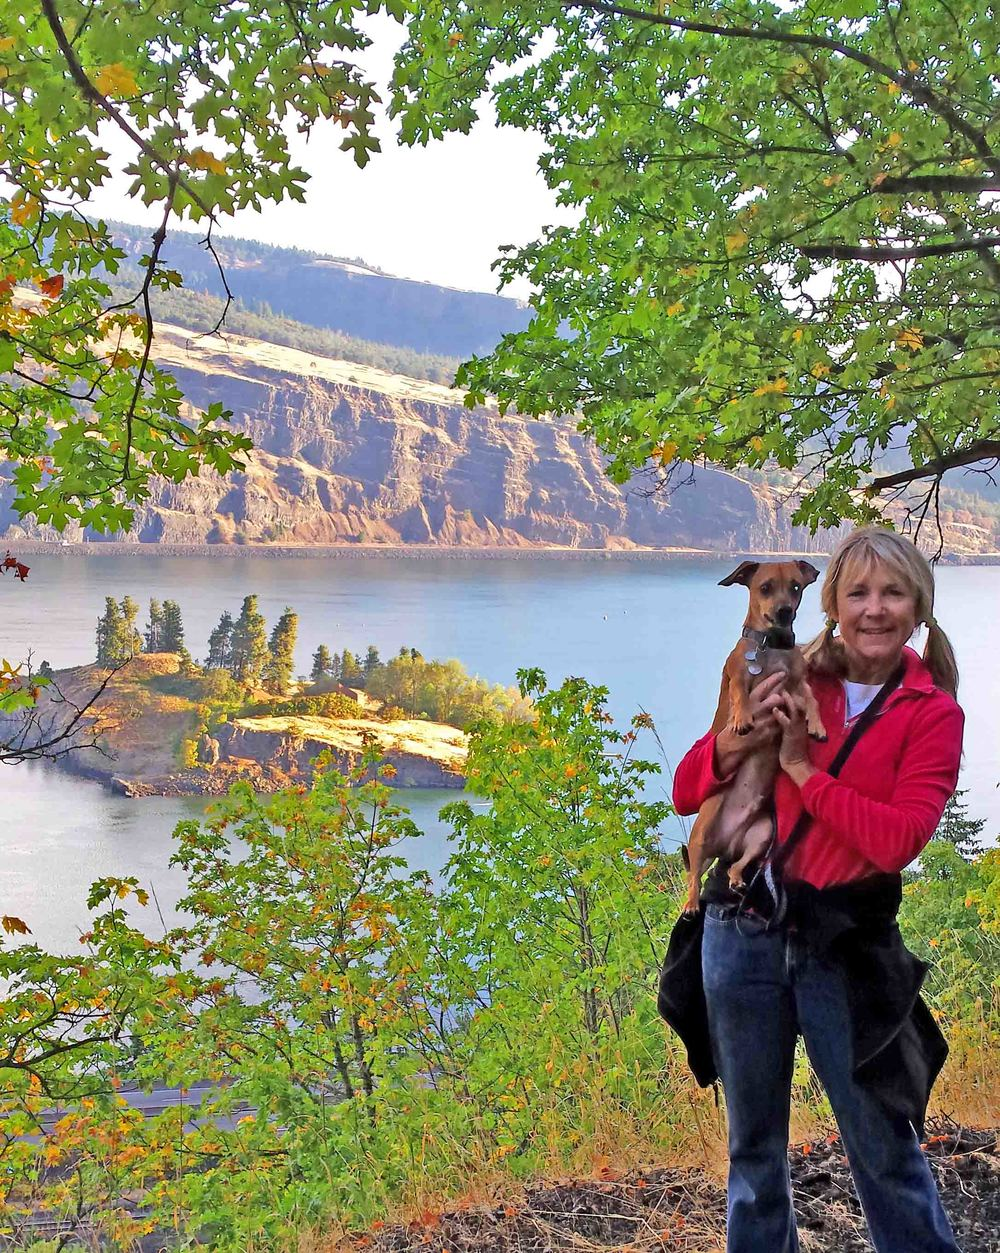 The DogDiary.org team lives next to the Mosier Twin Tunnels trail - a section of the Historic Columbia River Highway that is closed to vehicles. Amazing dog walks here! Pictured: Doxie Doodle, writer dog with dog mom Barb Ayers.